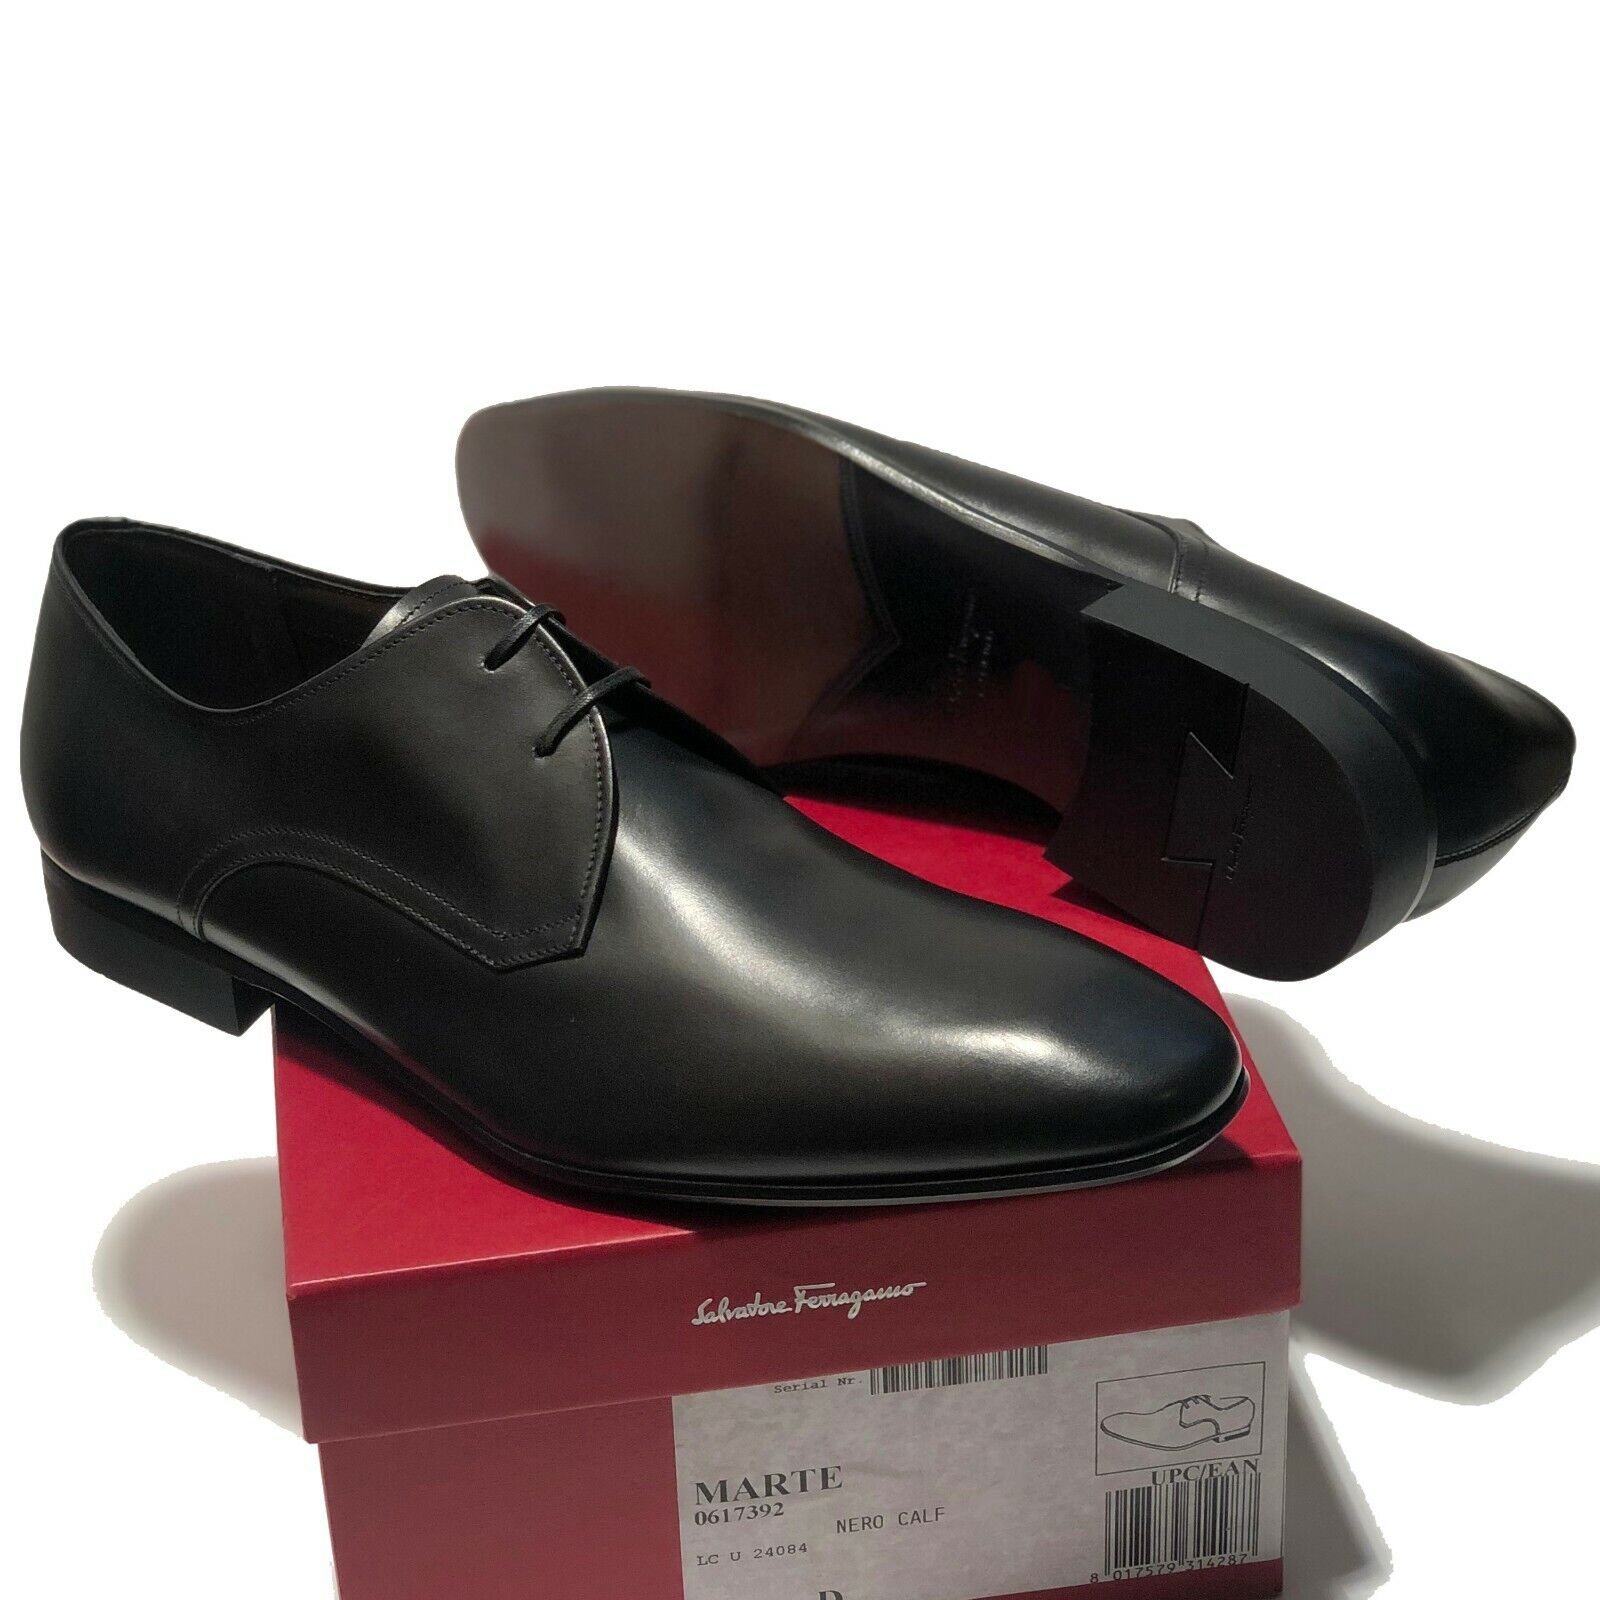 NEW Ferragamo Black Leather Fashion Plain Toe Derby Men's Dress Shoes Oxford